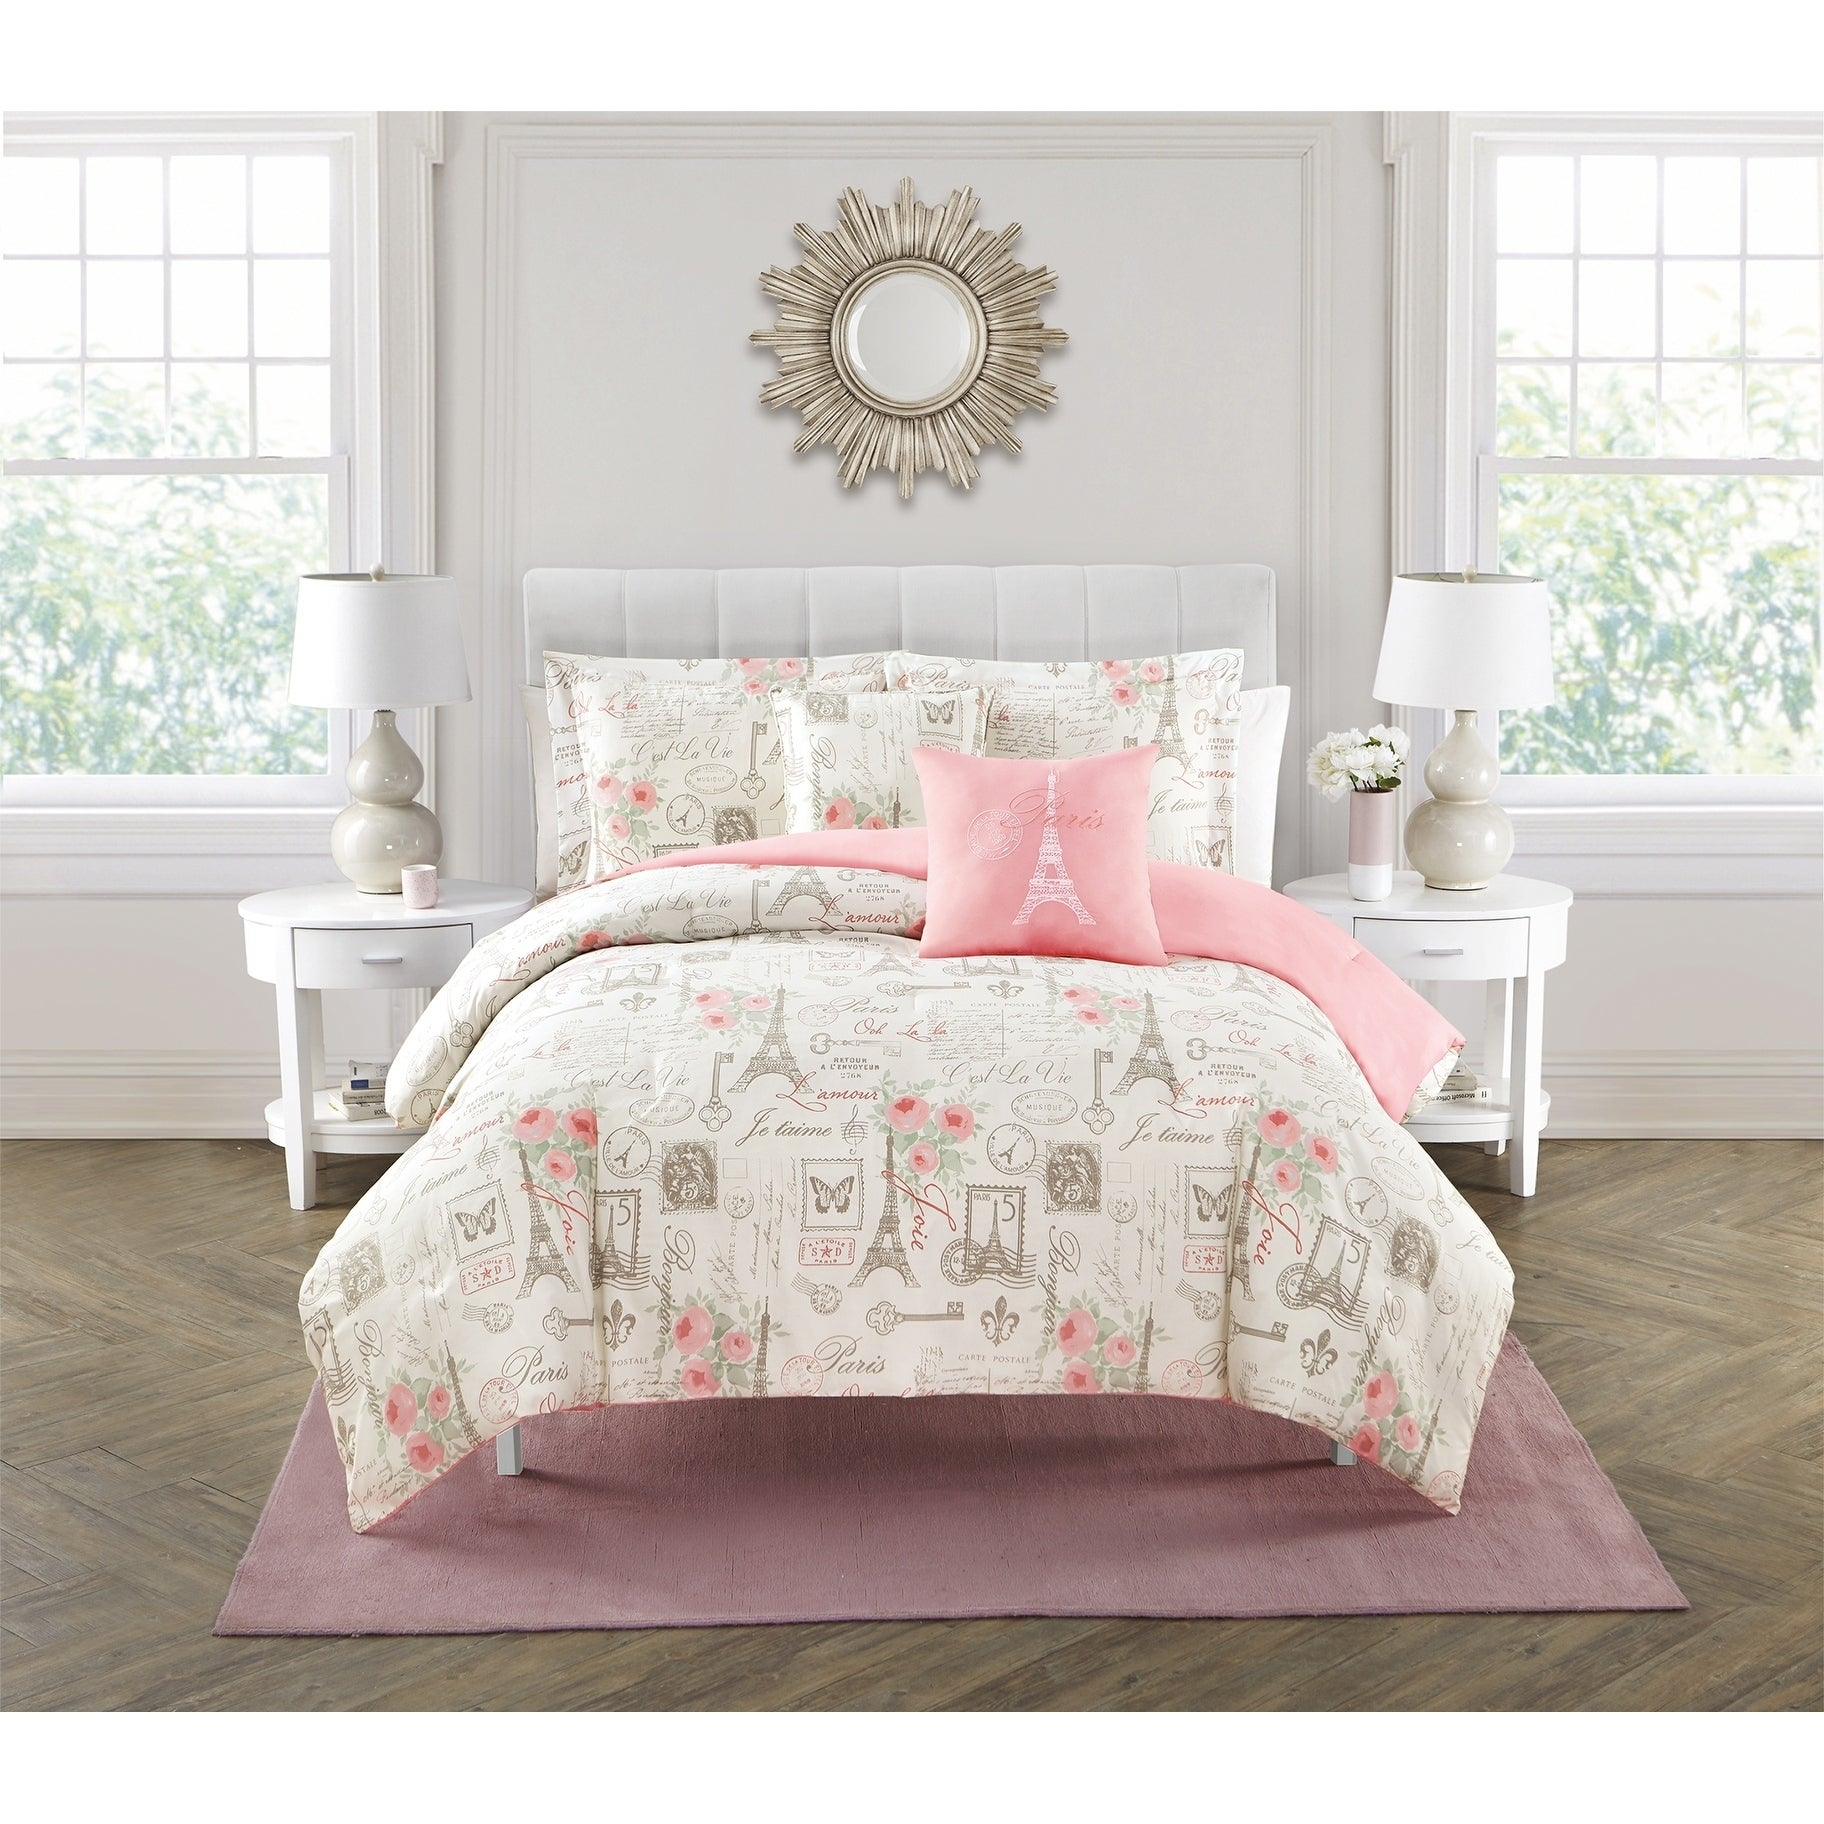 City Of Romance Pink Paris Themed 5 Piece Reversible Comforter Set On Sale Overstock 20704046